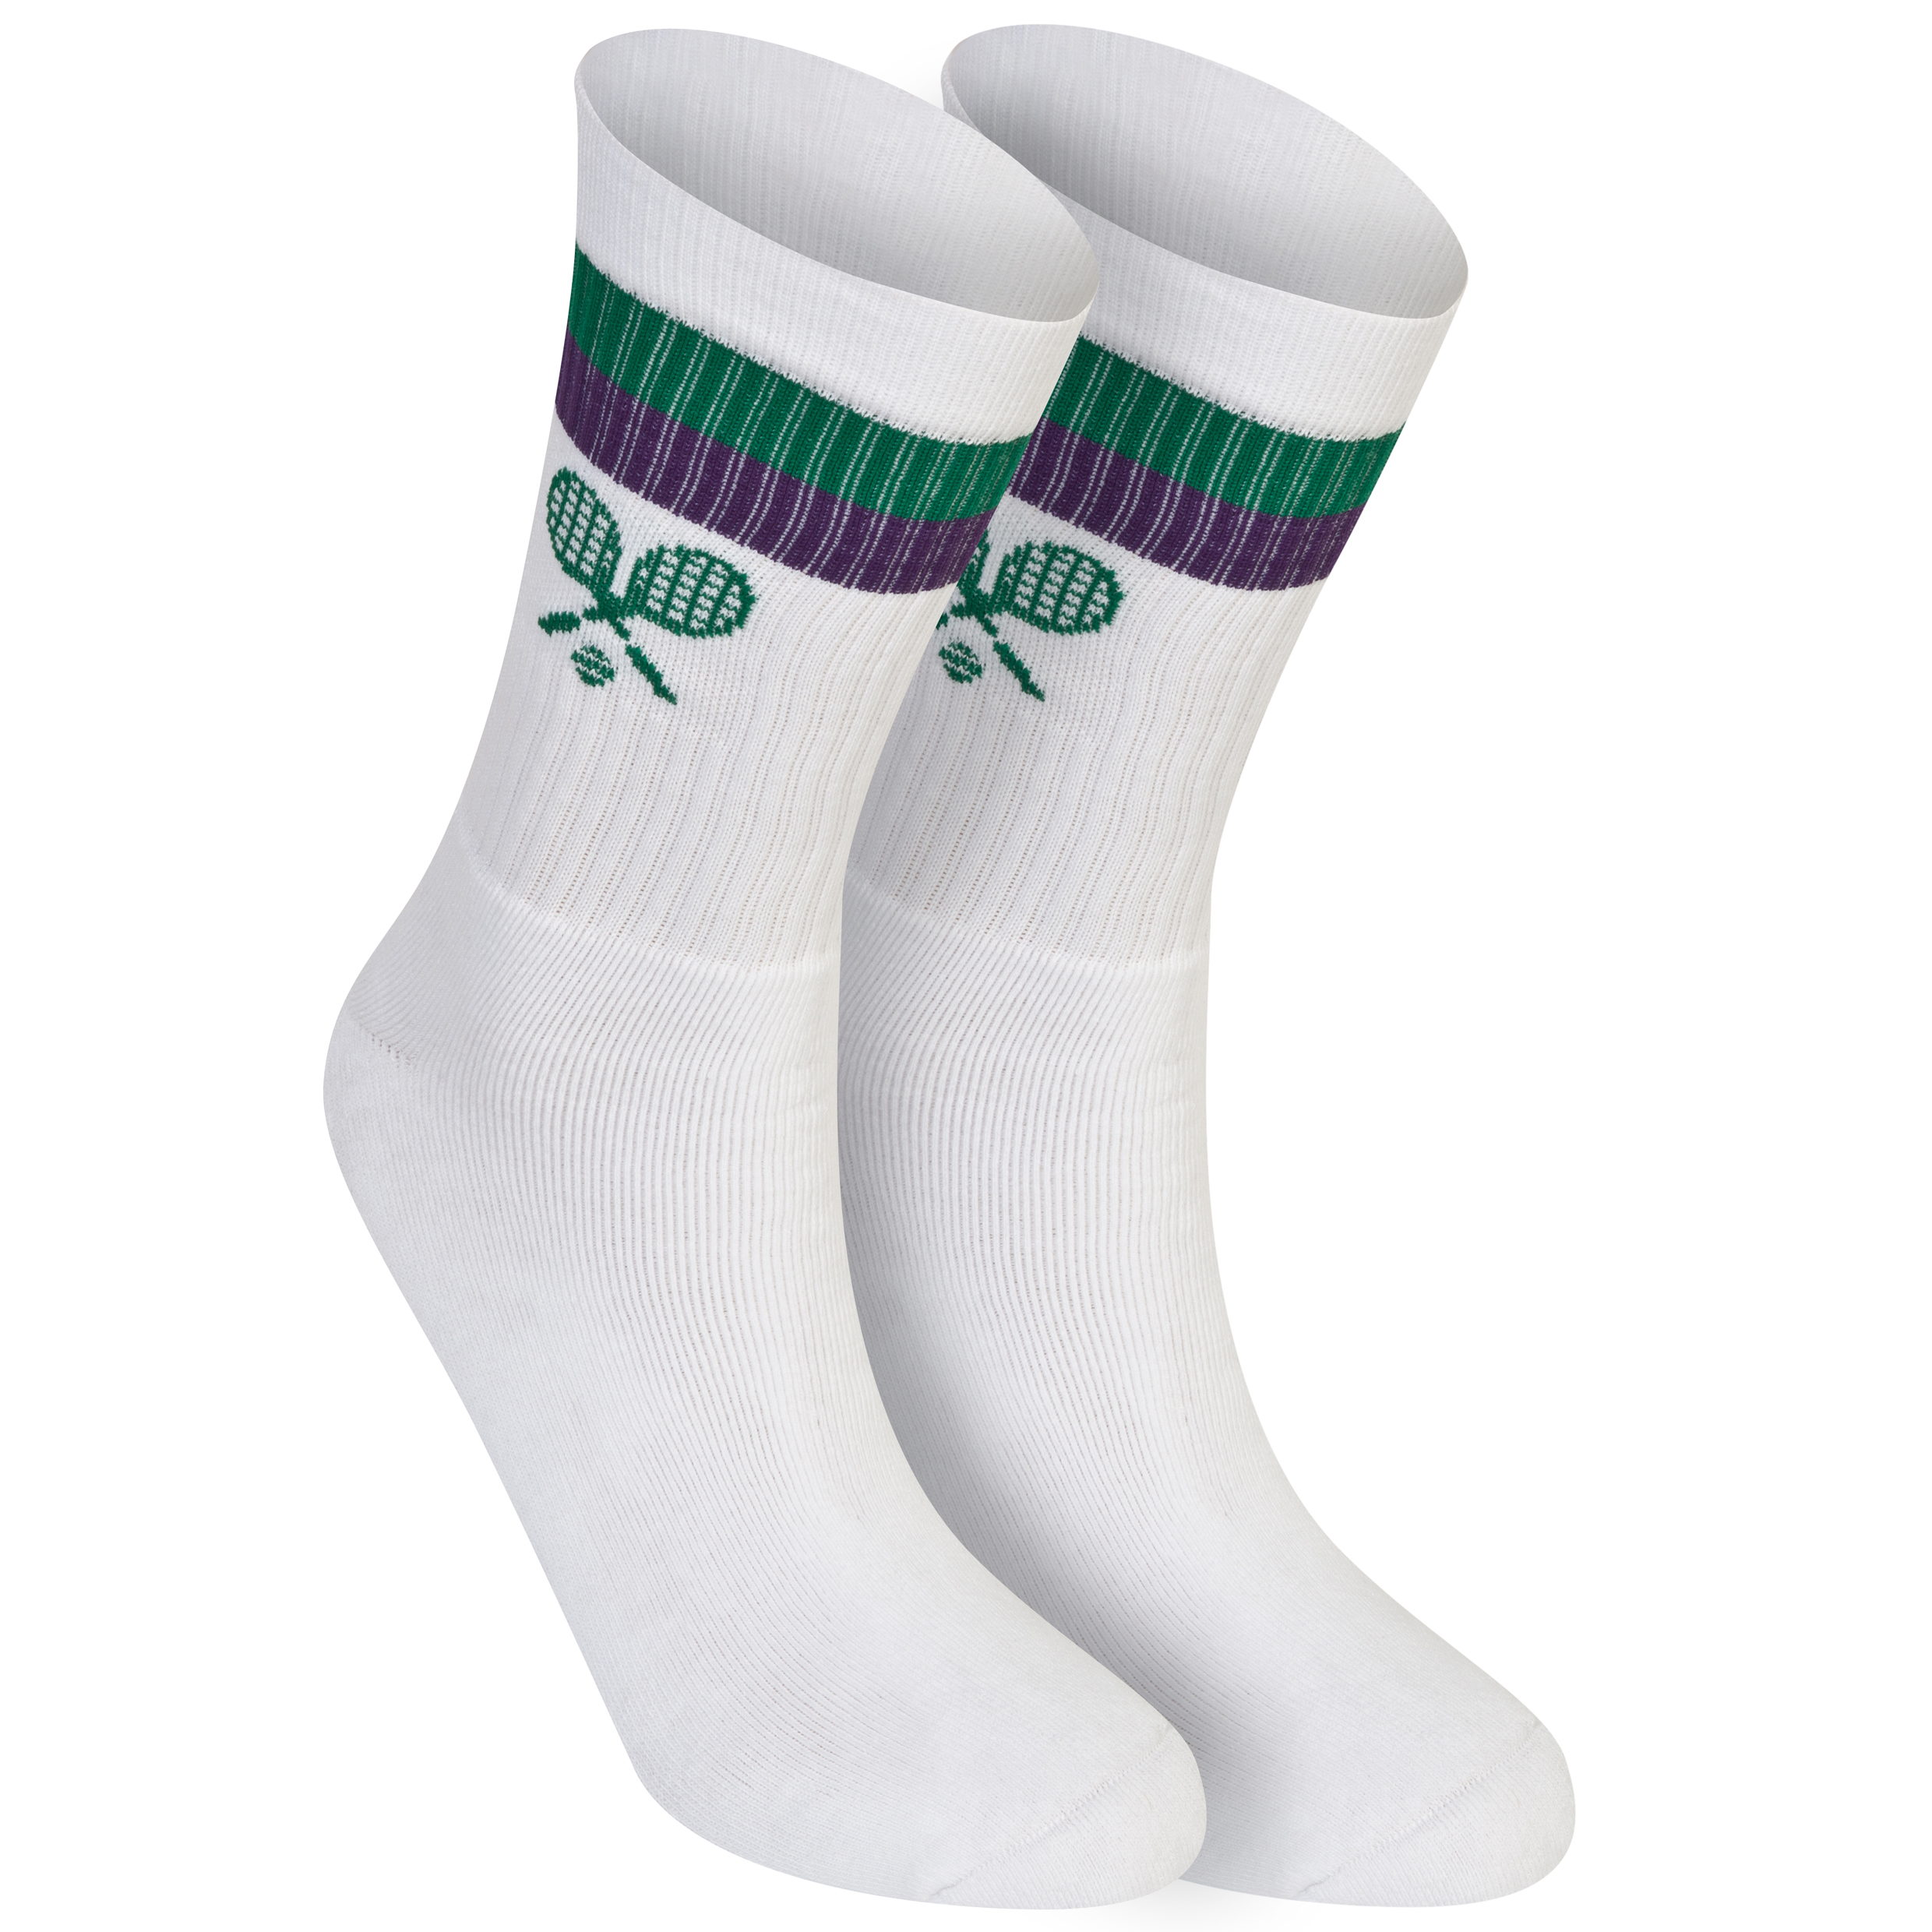 Wimbledon Crossed Racket Socks White